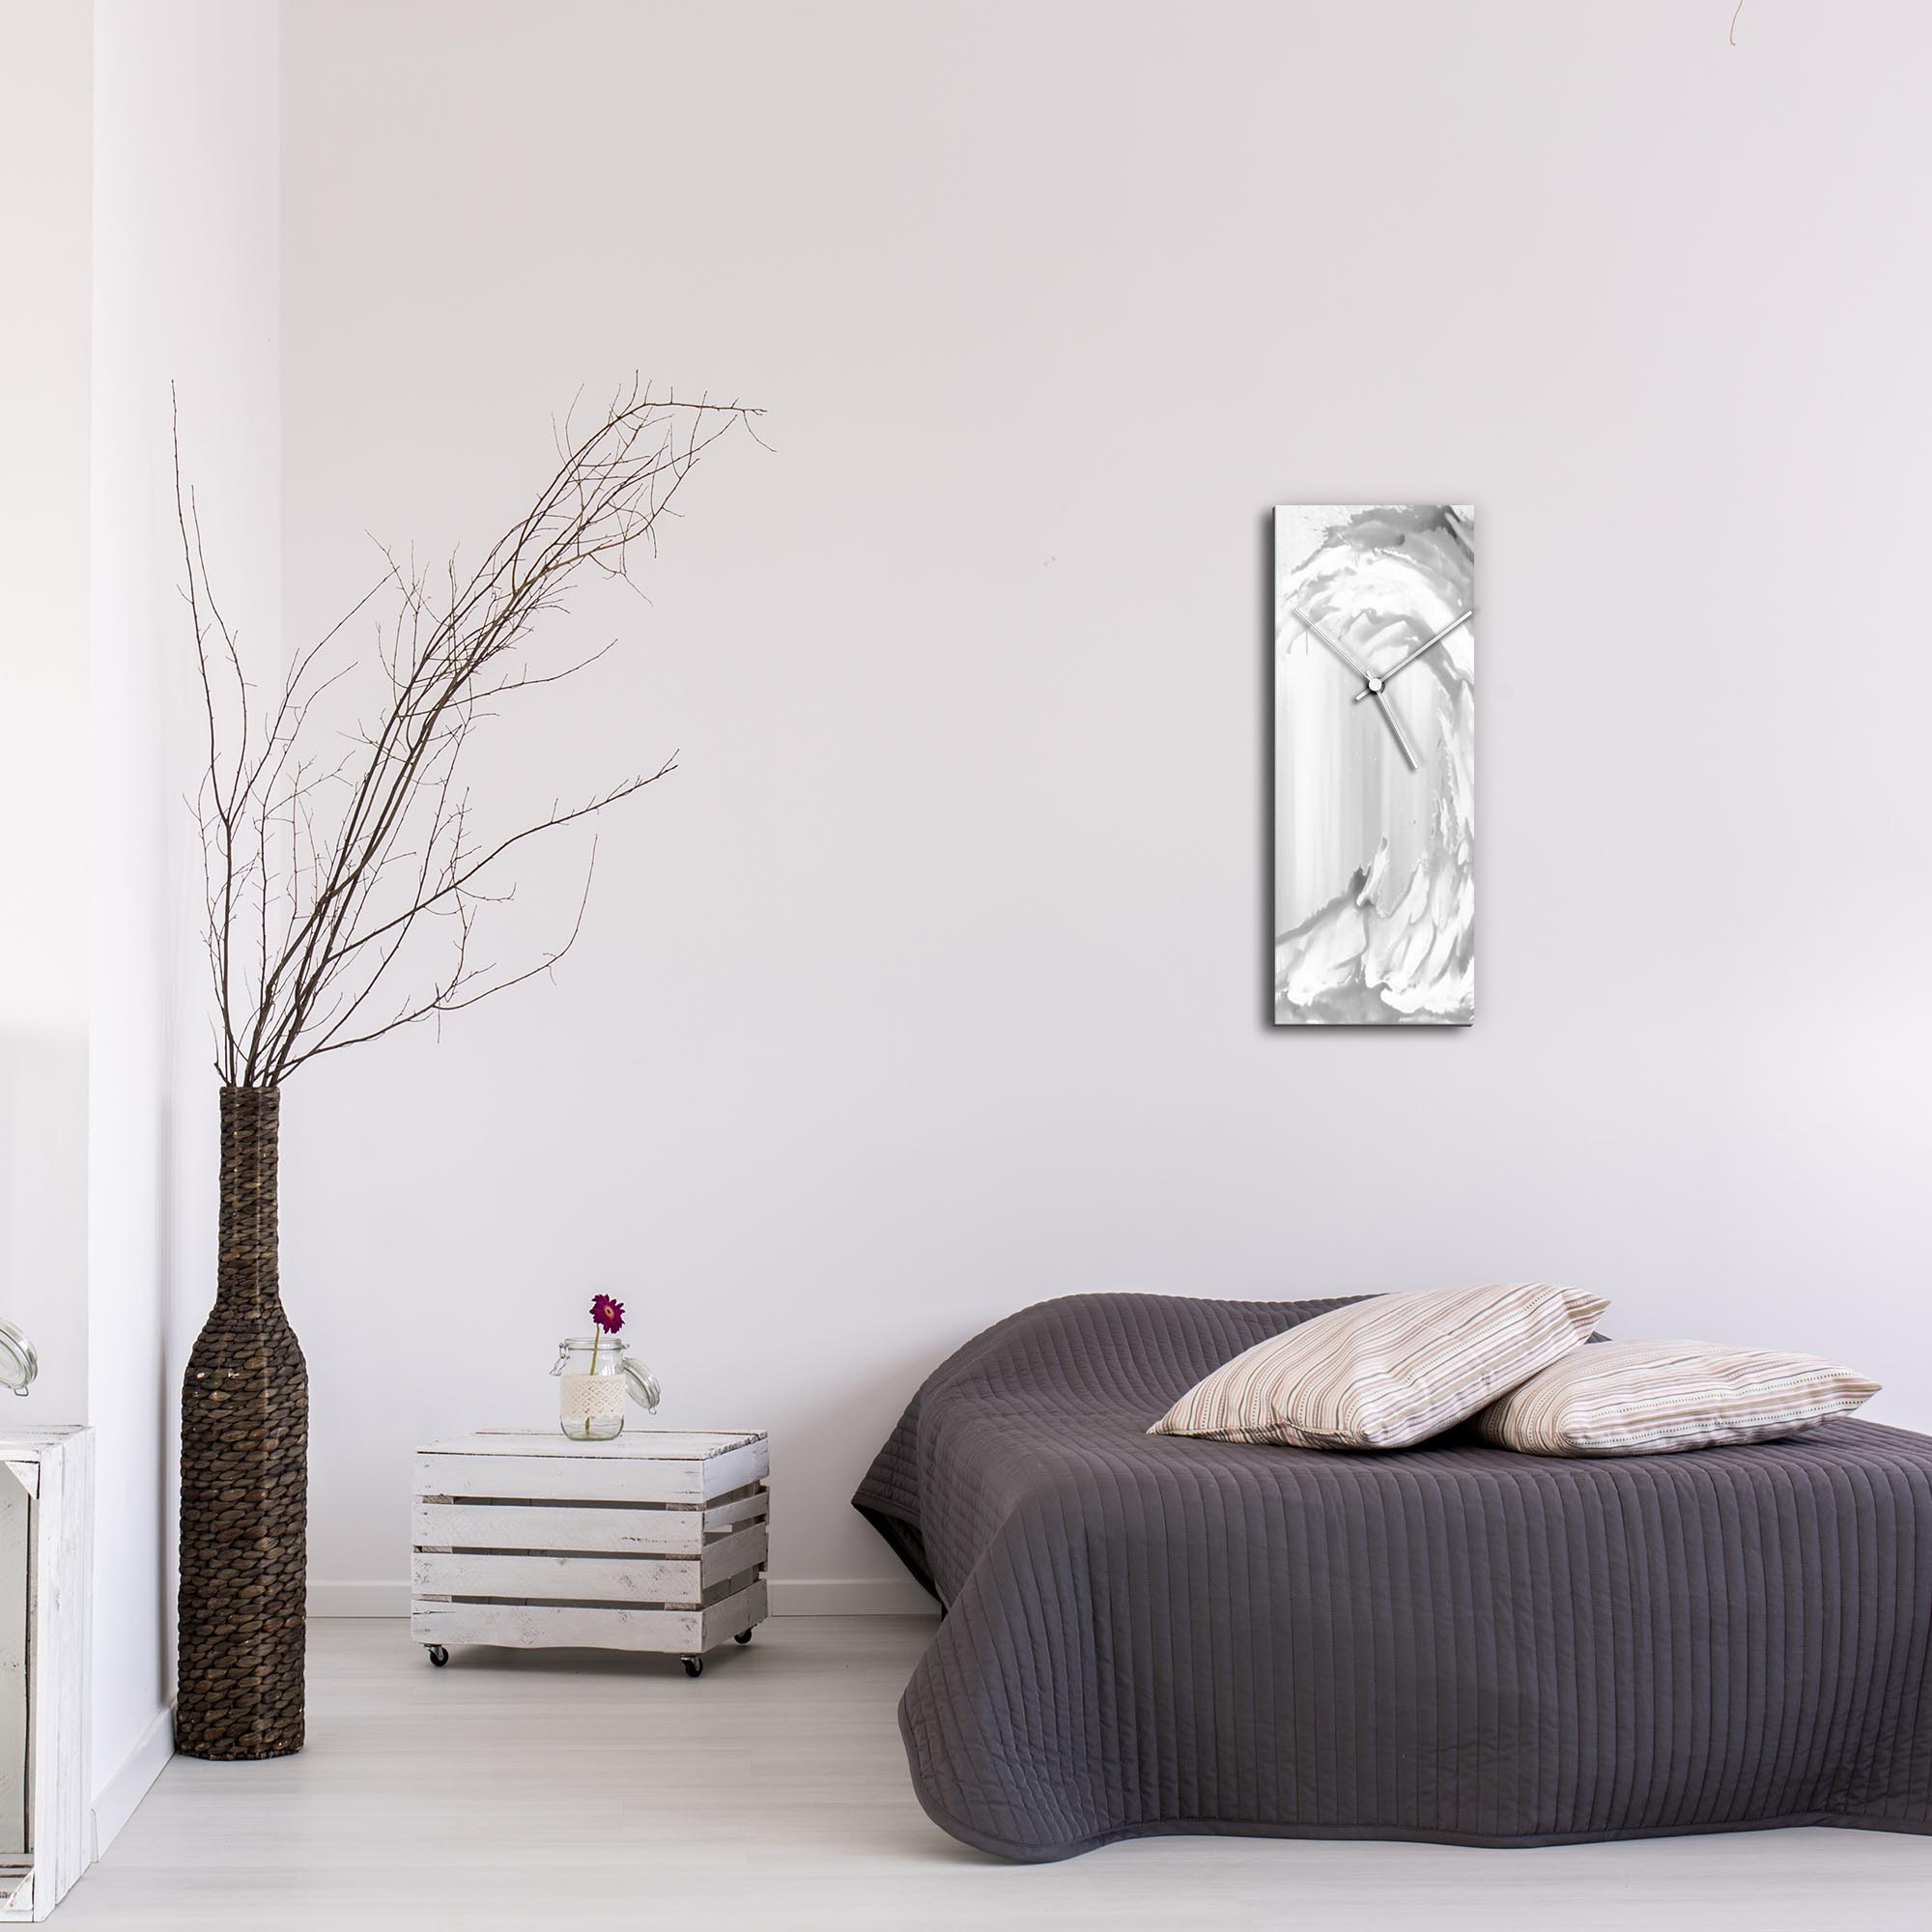 White Wave v2 Clock Large by Mendo Vasilevski - Urban Abstract Home Decor - Lifestyle View